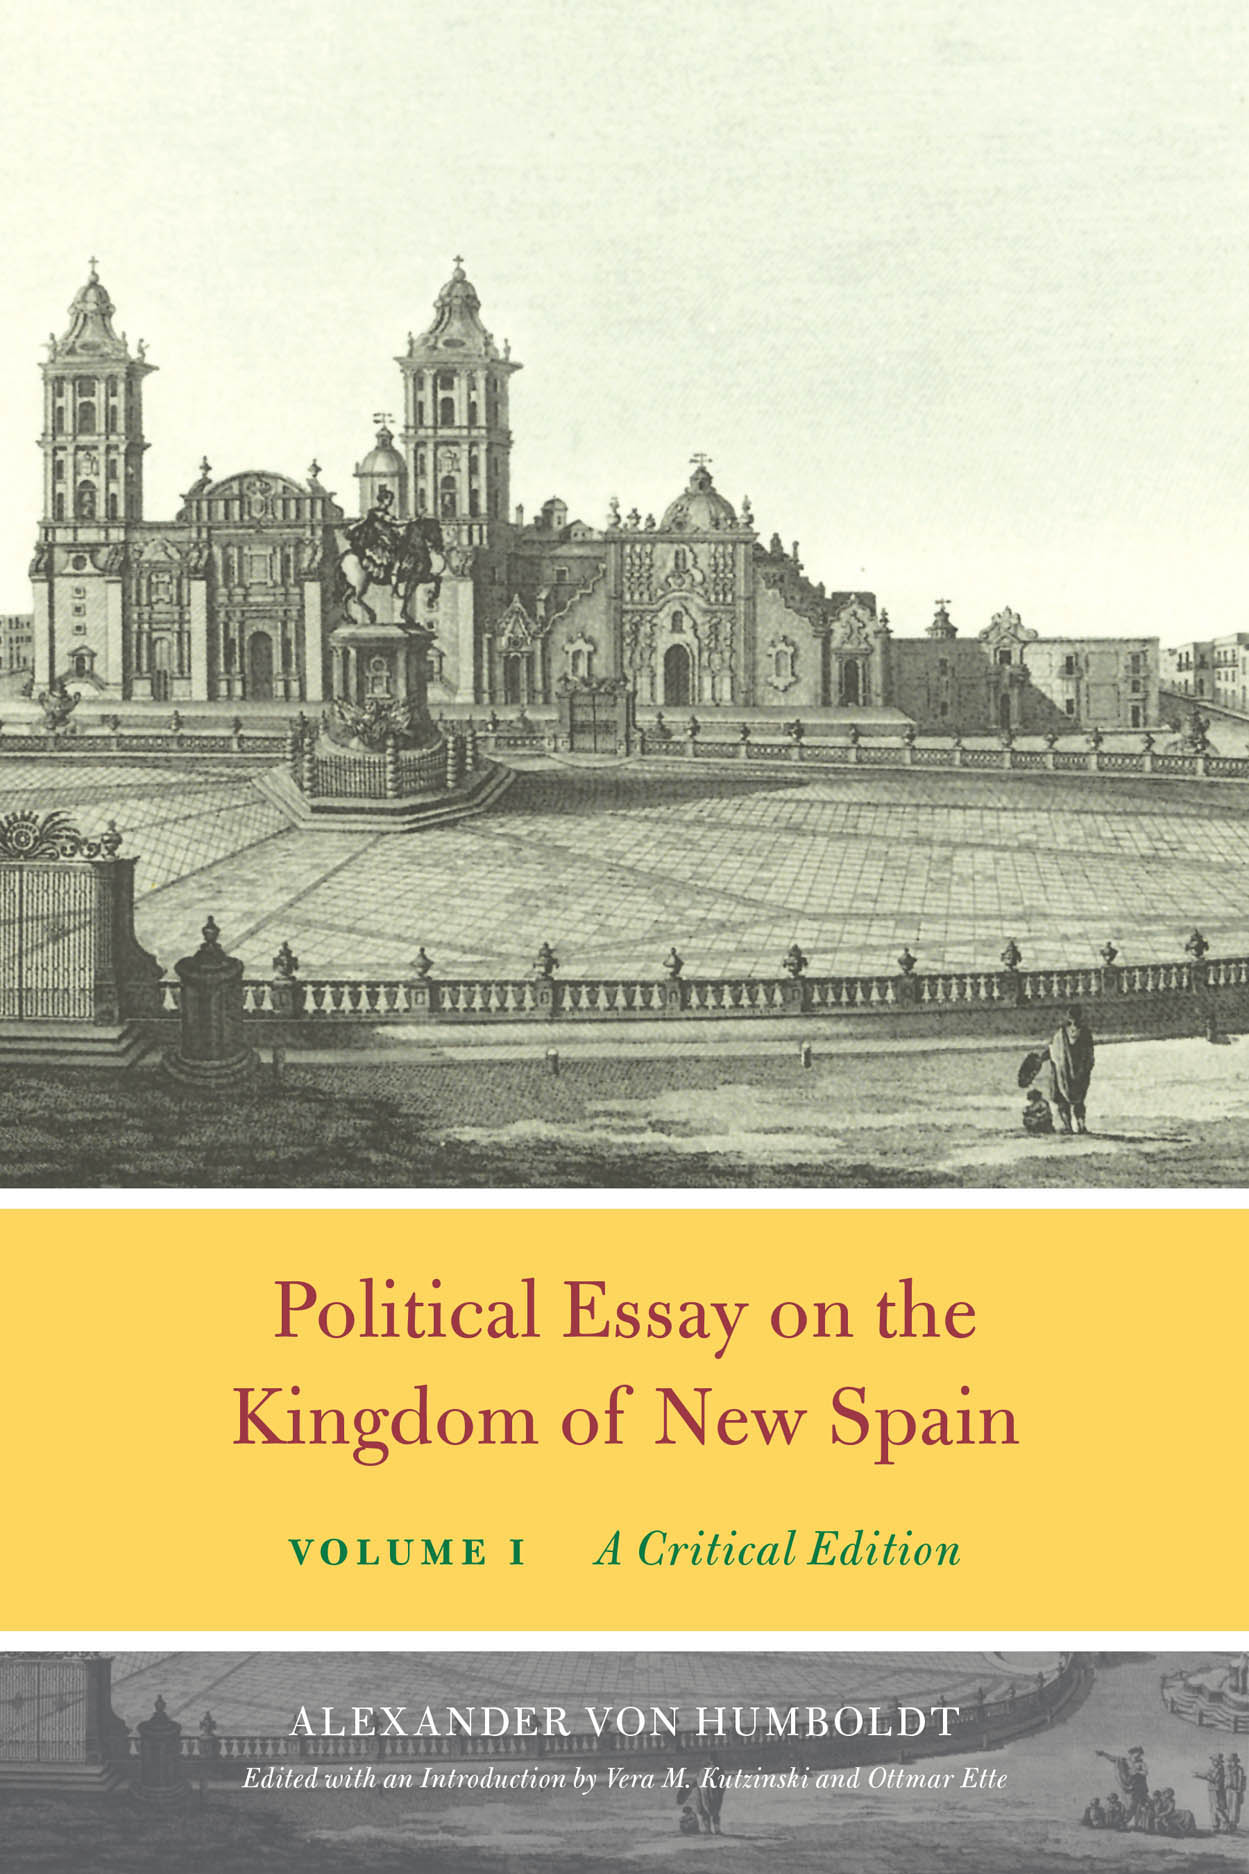 Political Essay on the Kingdom of New Spain, Volume 1: A Critical Edition